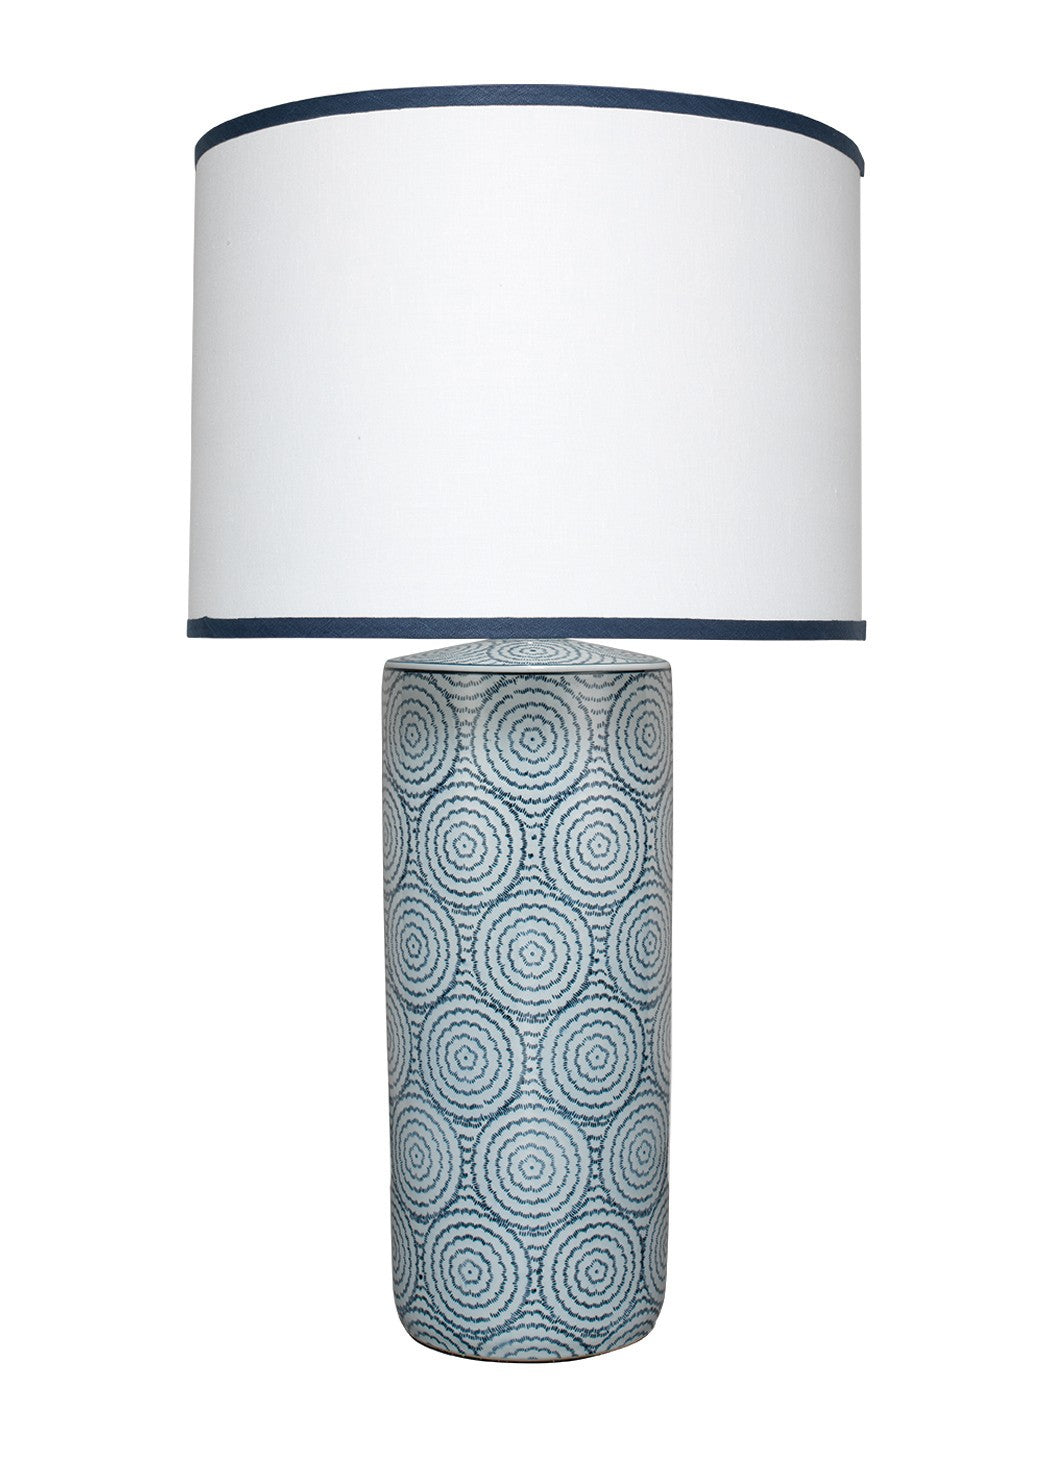 Jamie Young Hamptons Table Lamp